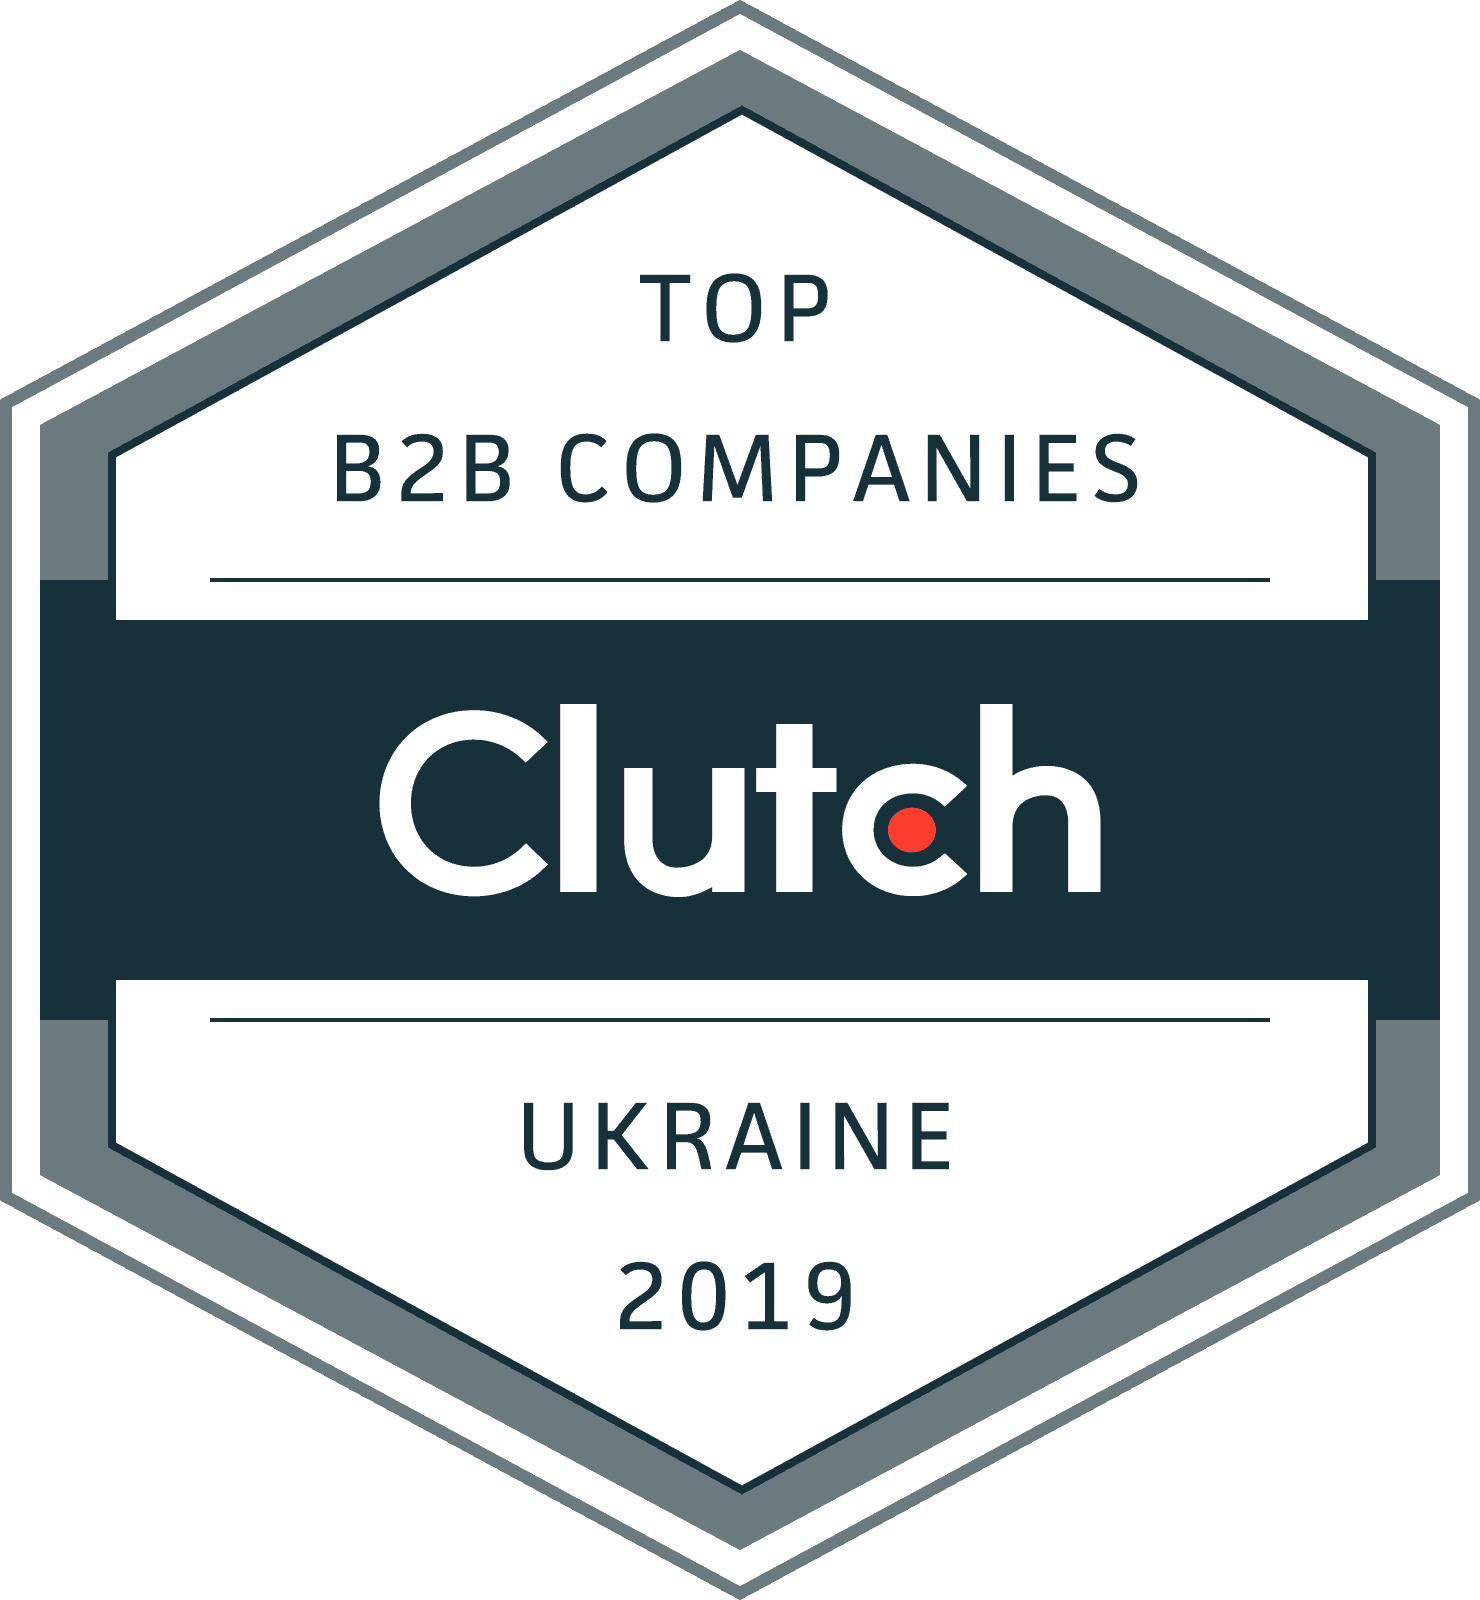 Web Help Agency Recognized as a Top B2B Company by Clutch